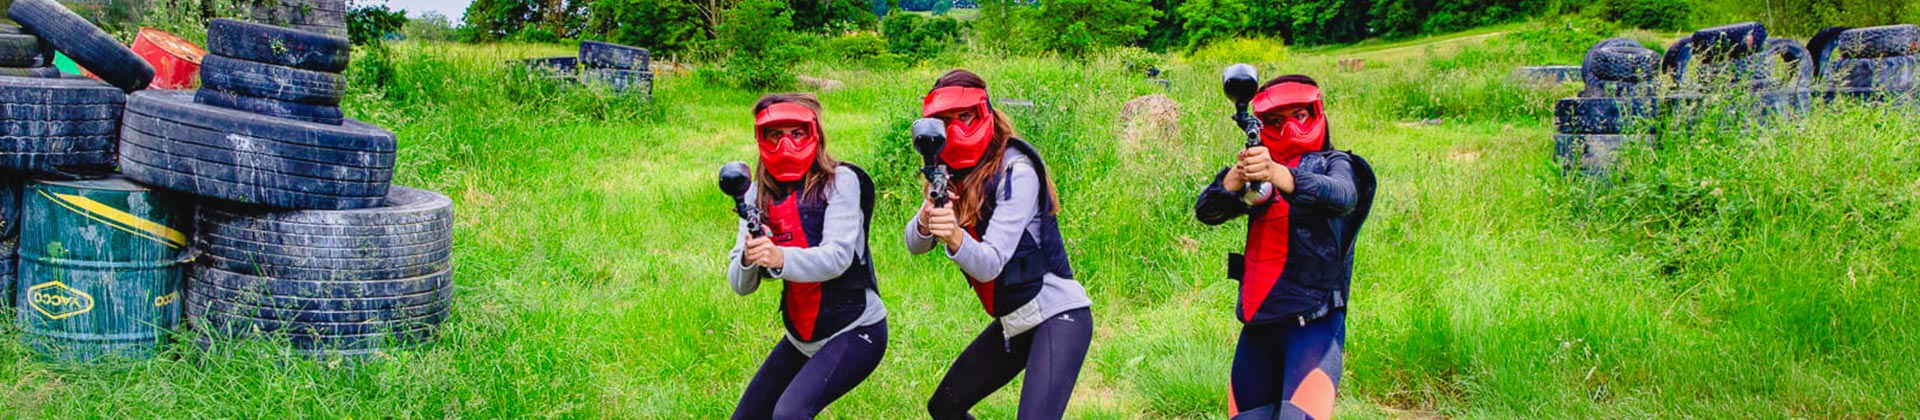 tourisme copines initiation paintball Auch Toulouse Tarbes Gers occitanie